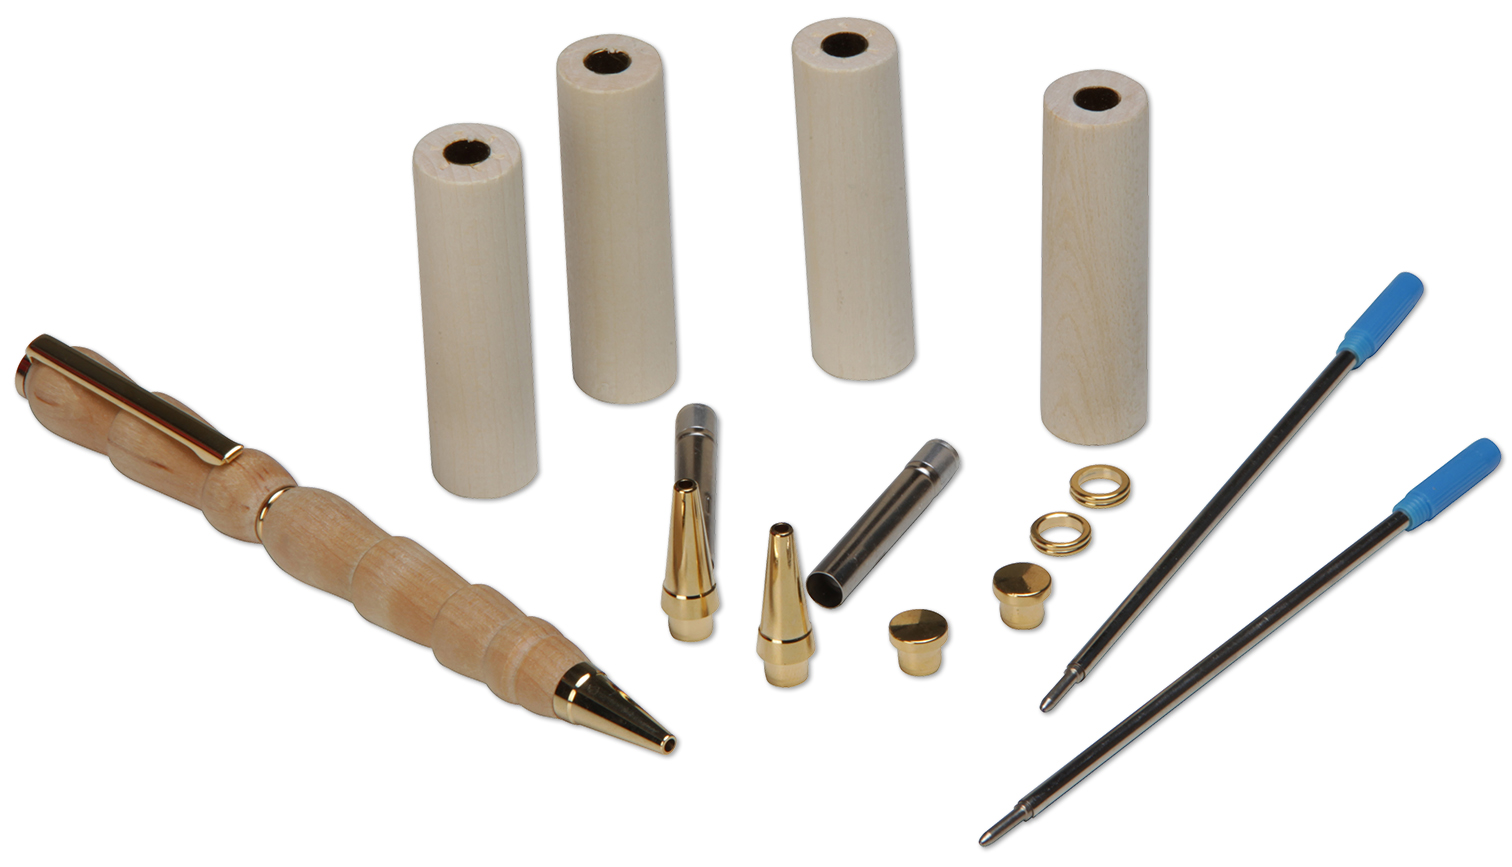 Basic equipment: Penmaking kit